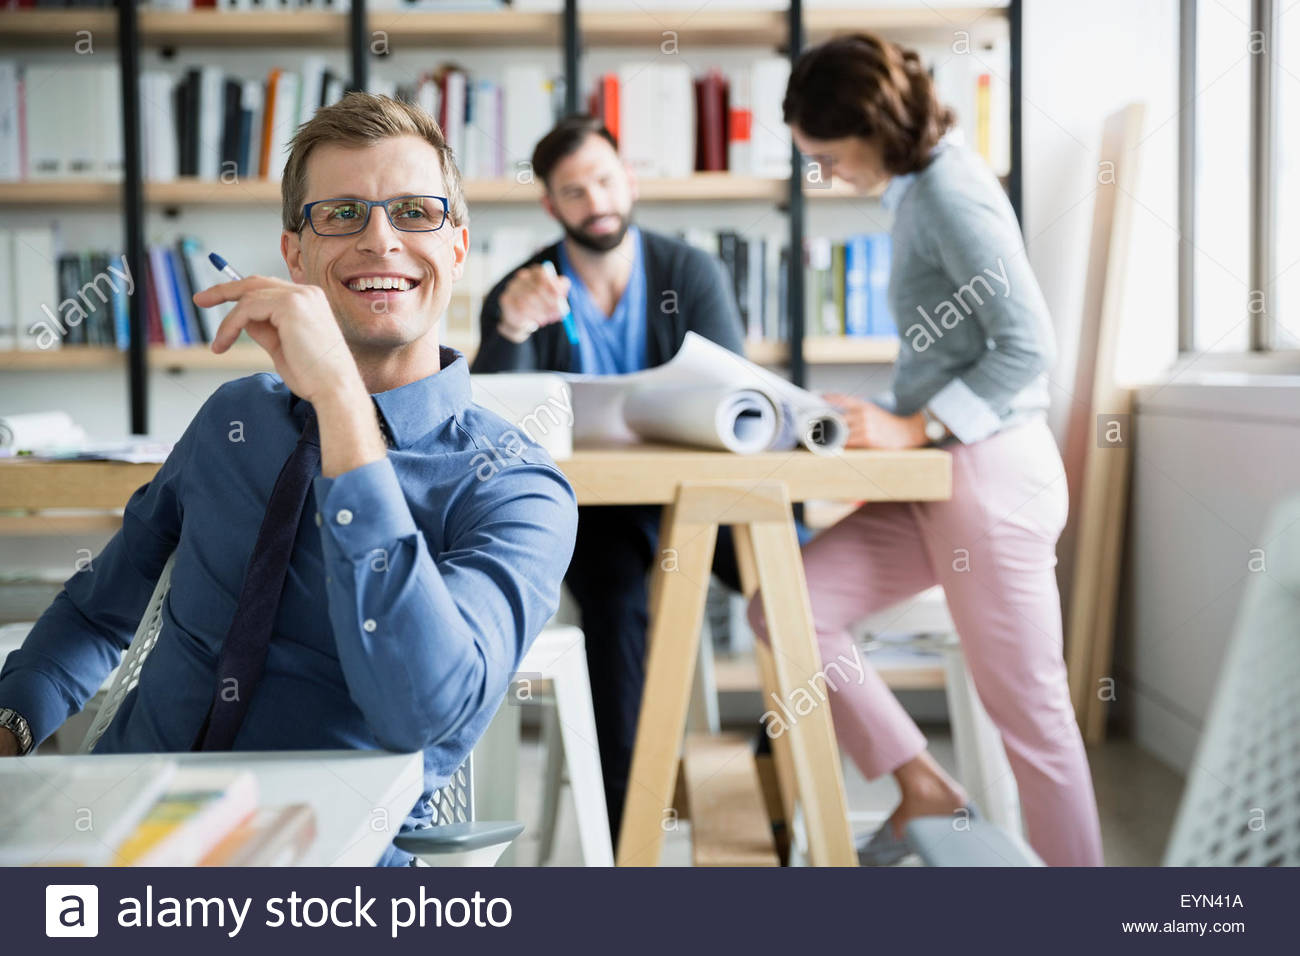 Smiling architect in office - Stock Image